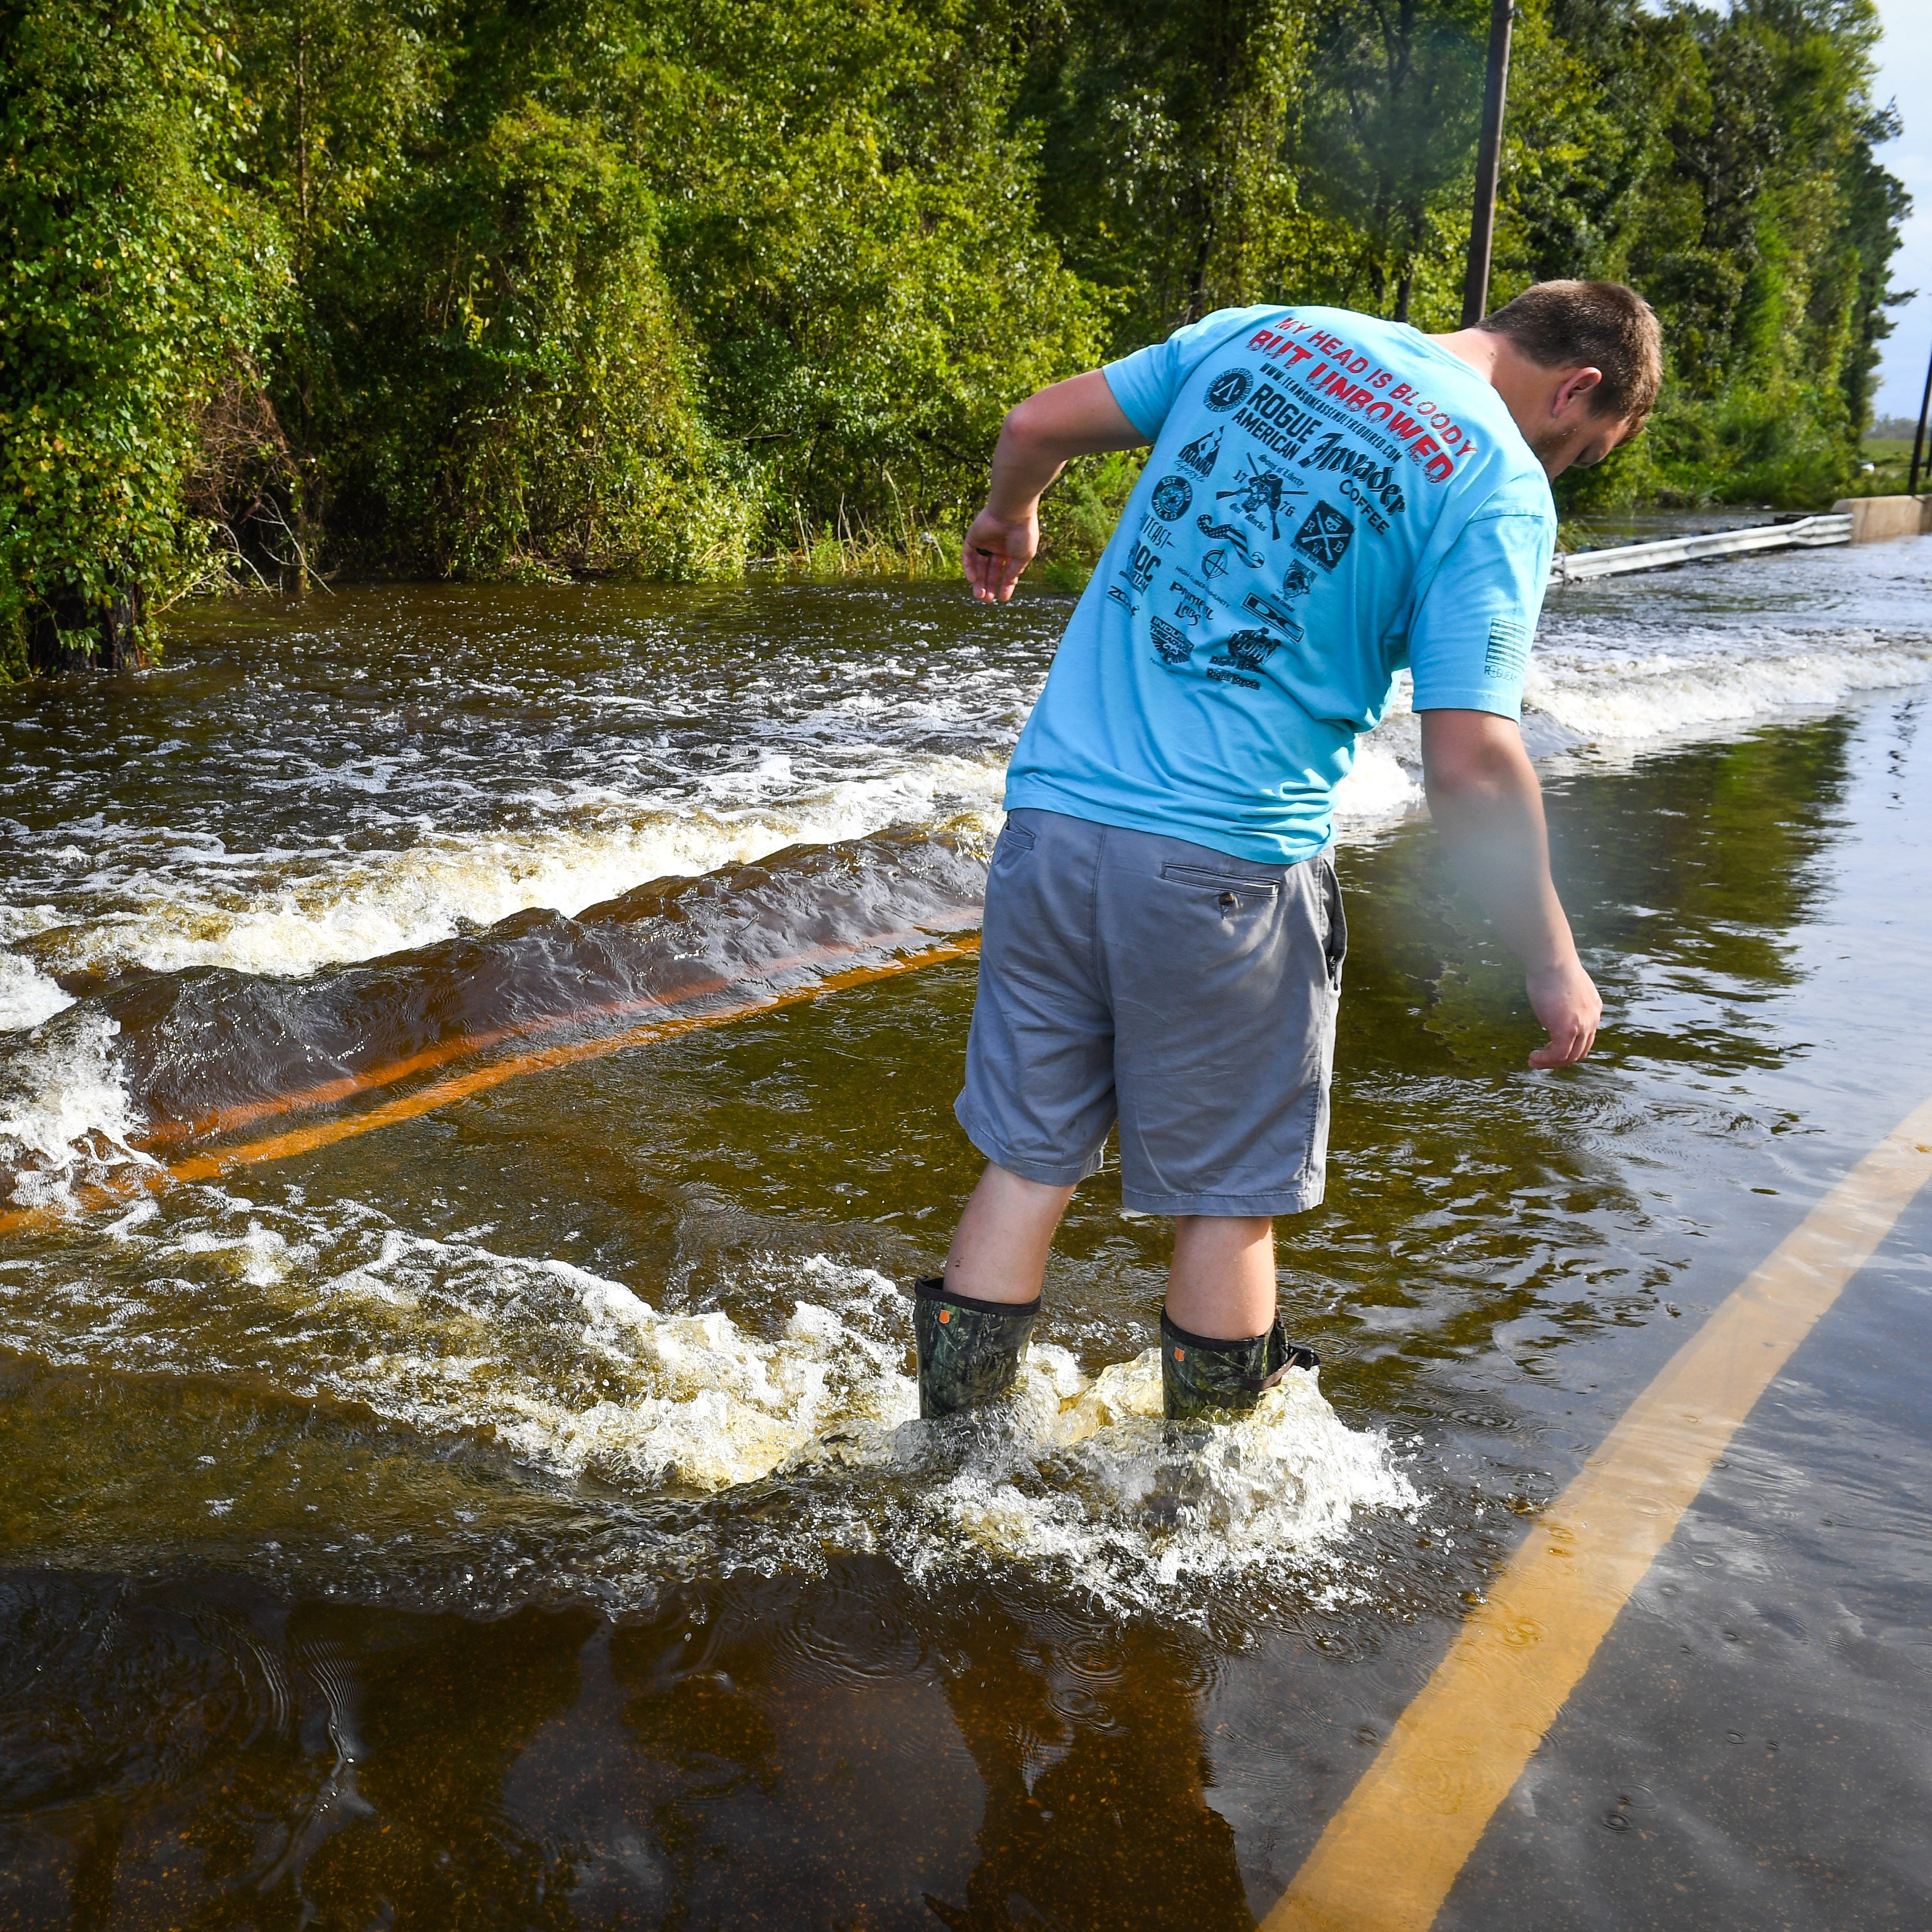 Lee Duncan of Clarkton, NC checks the road on foot finding it unfit to drive through with his truck. Duncan was unable to find a way home to Clarkton due to flooded roads across Slades Swamp which submerged Rico and Baldwin Roads at the Bladen and Columbus County Line just 2 miles south of Clarkton.